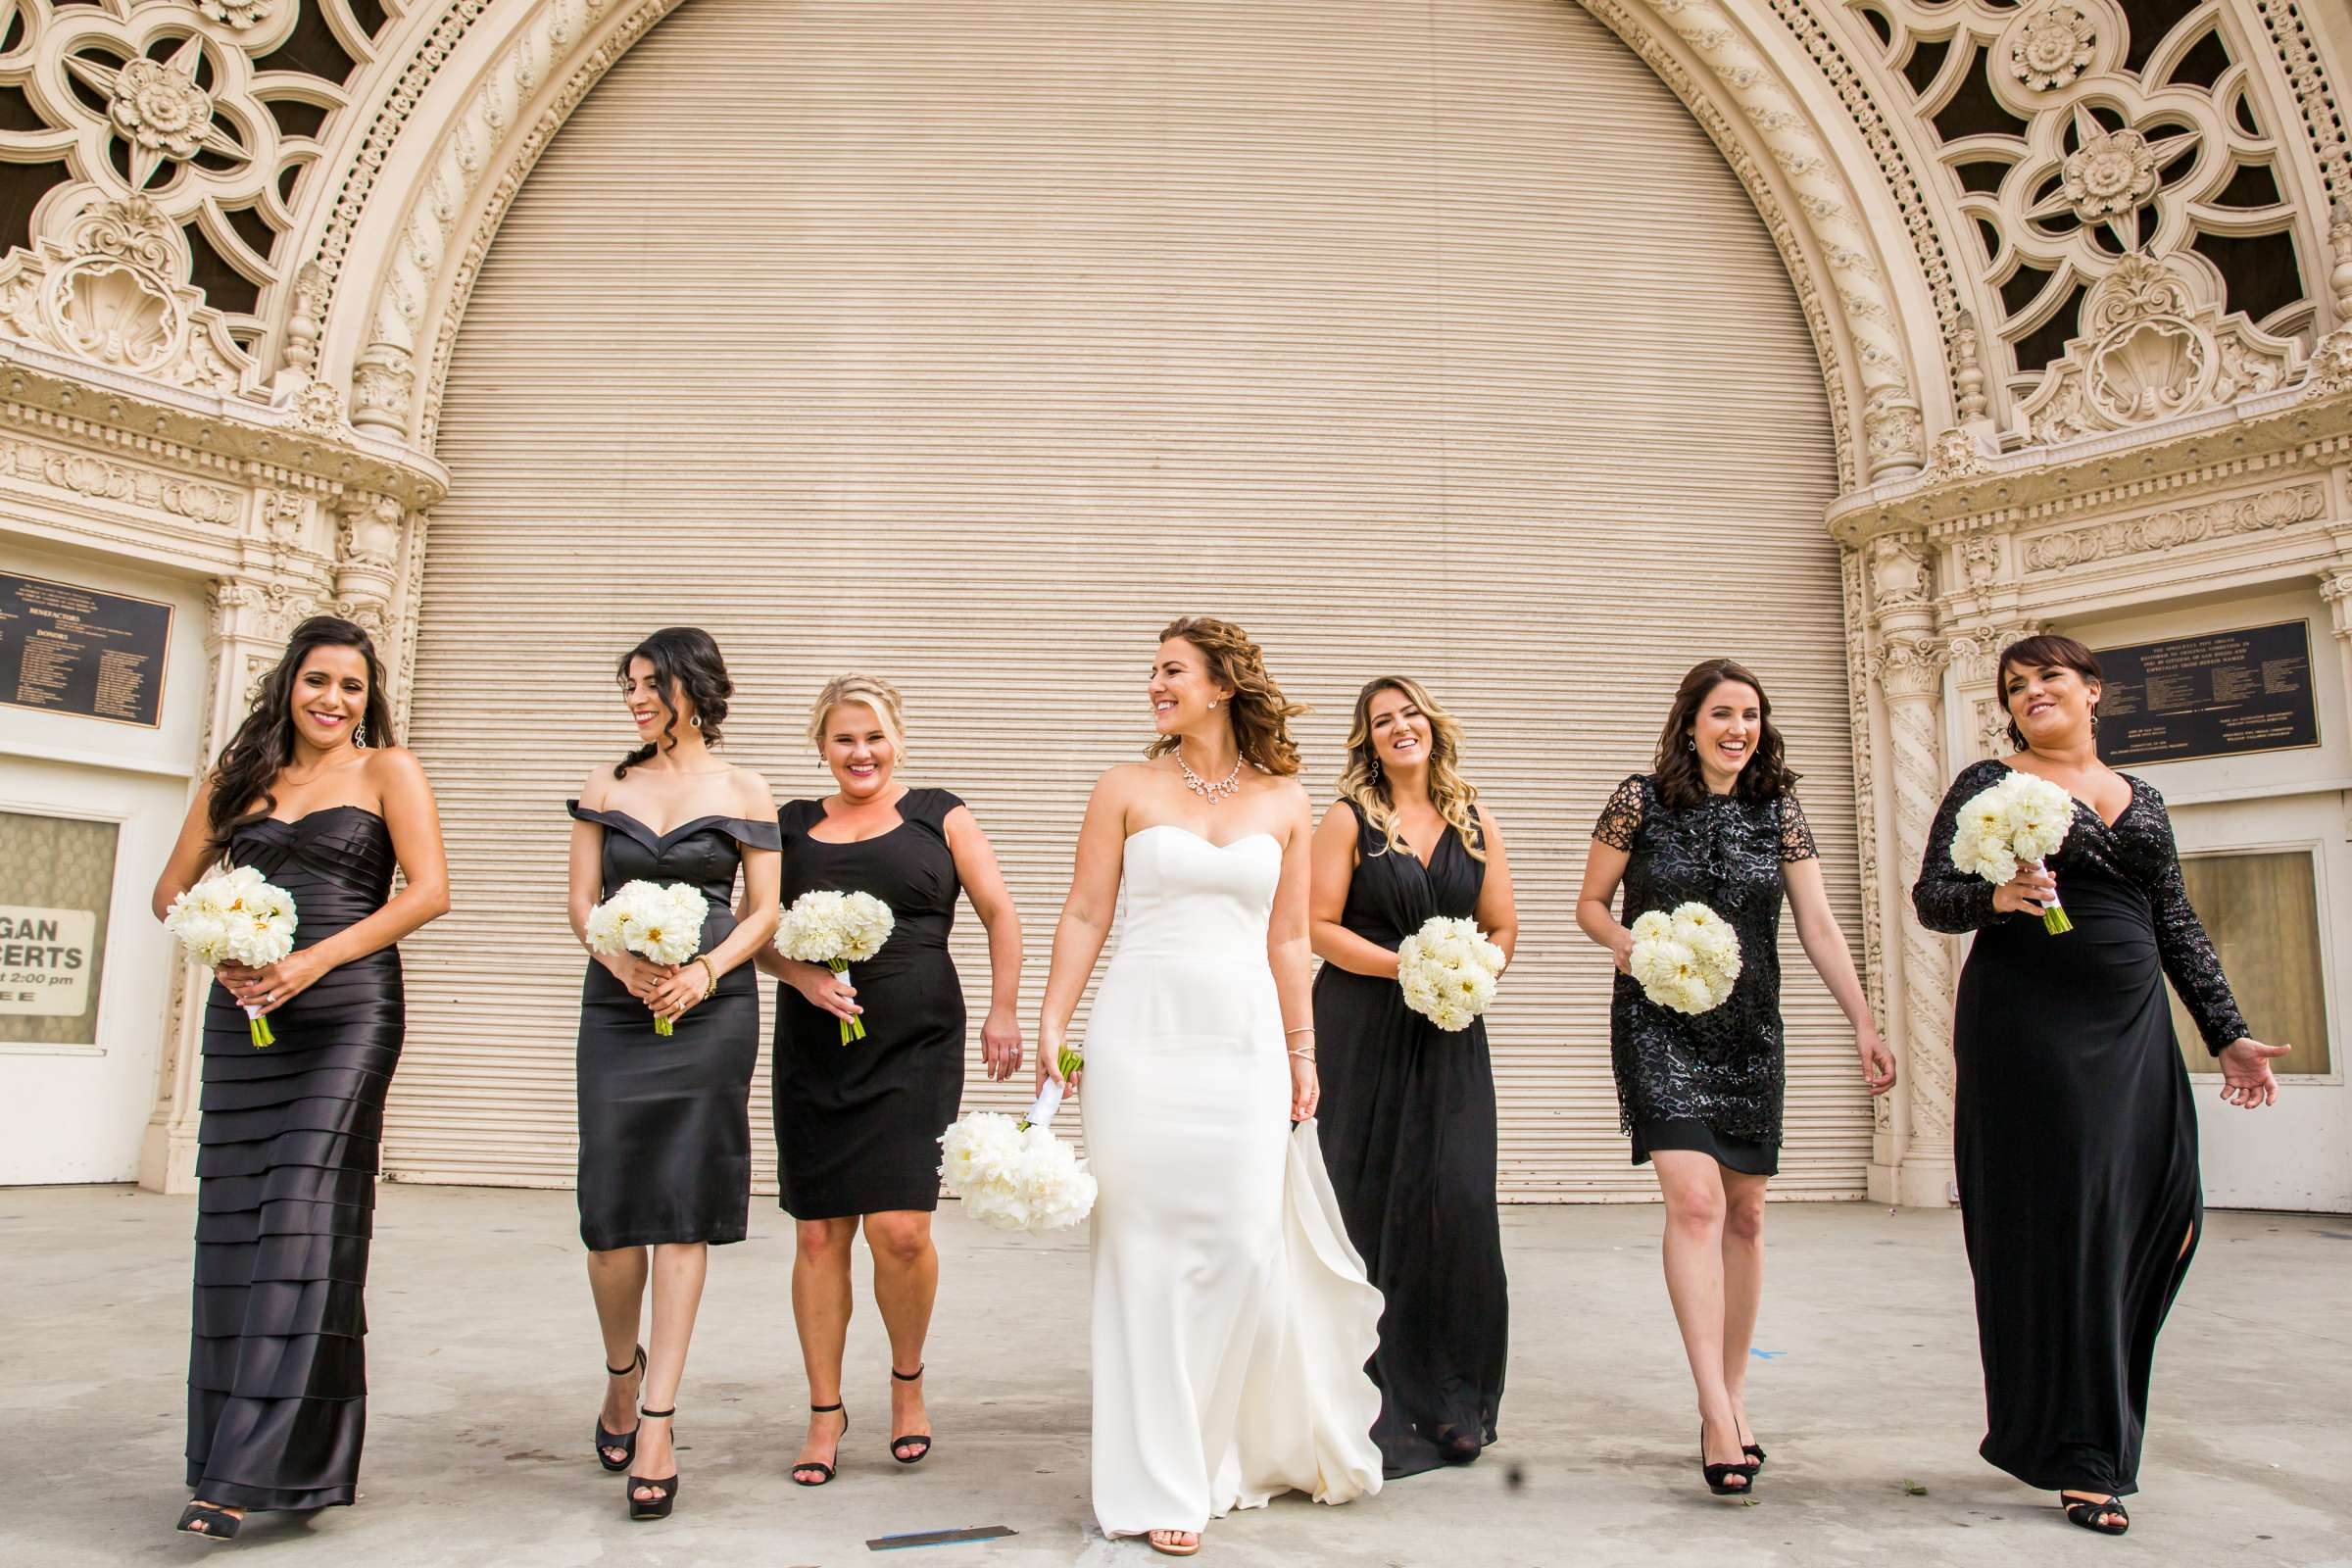 San Diego Museum of Art Wedding coordinated by First Comes Love Weddings & Events, Ruthie and Larry Wedding Photo #236833 by True Photography